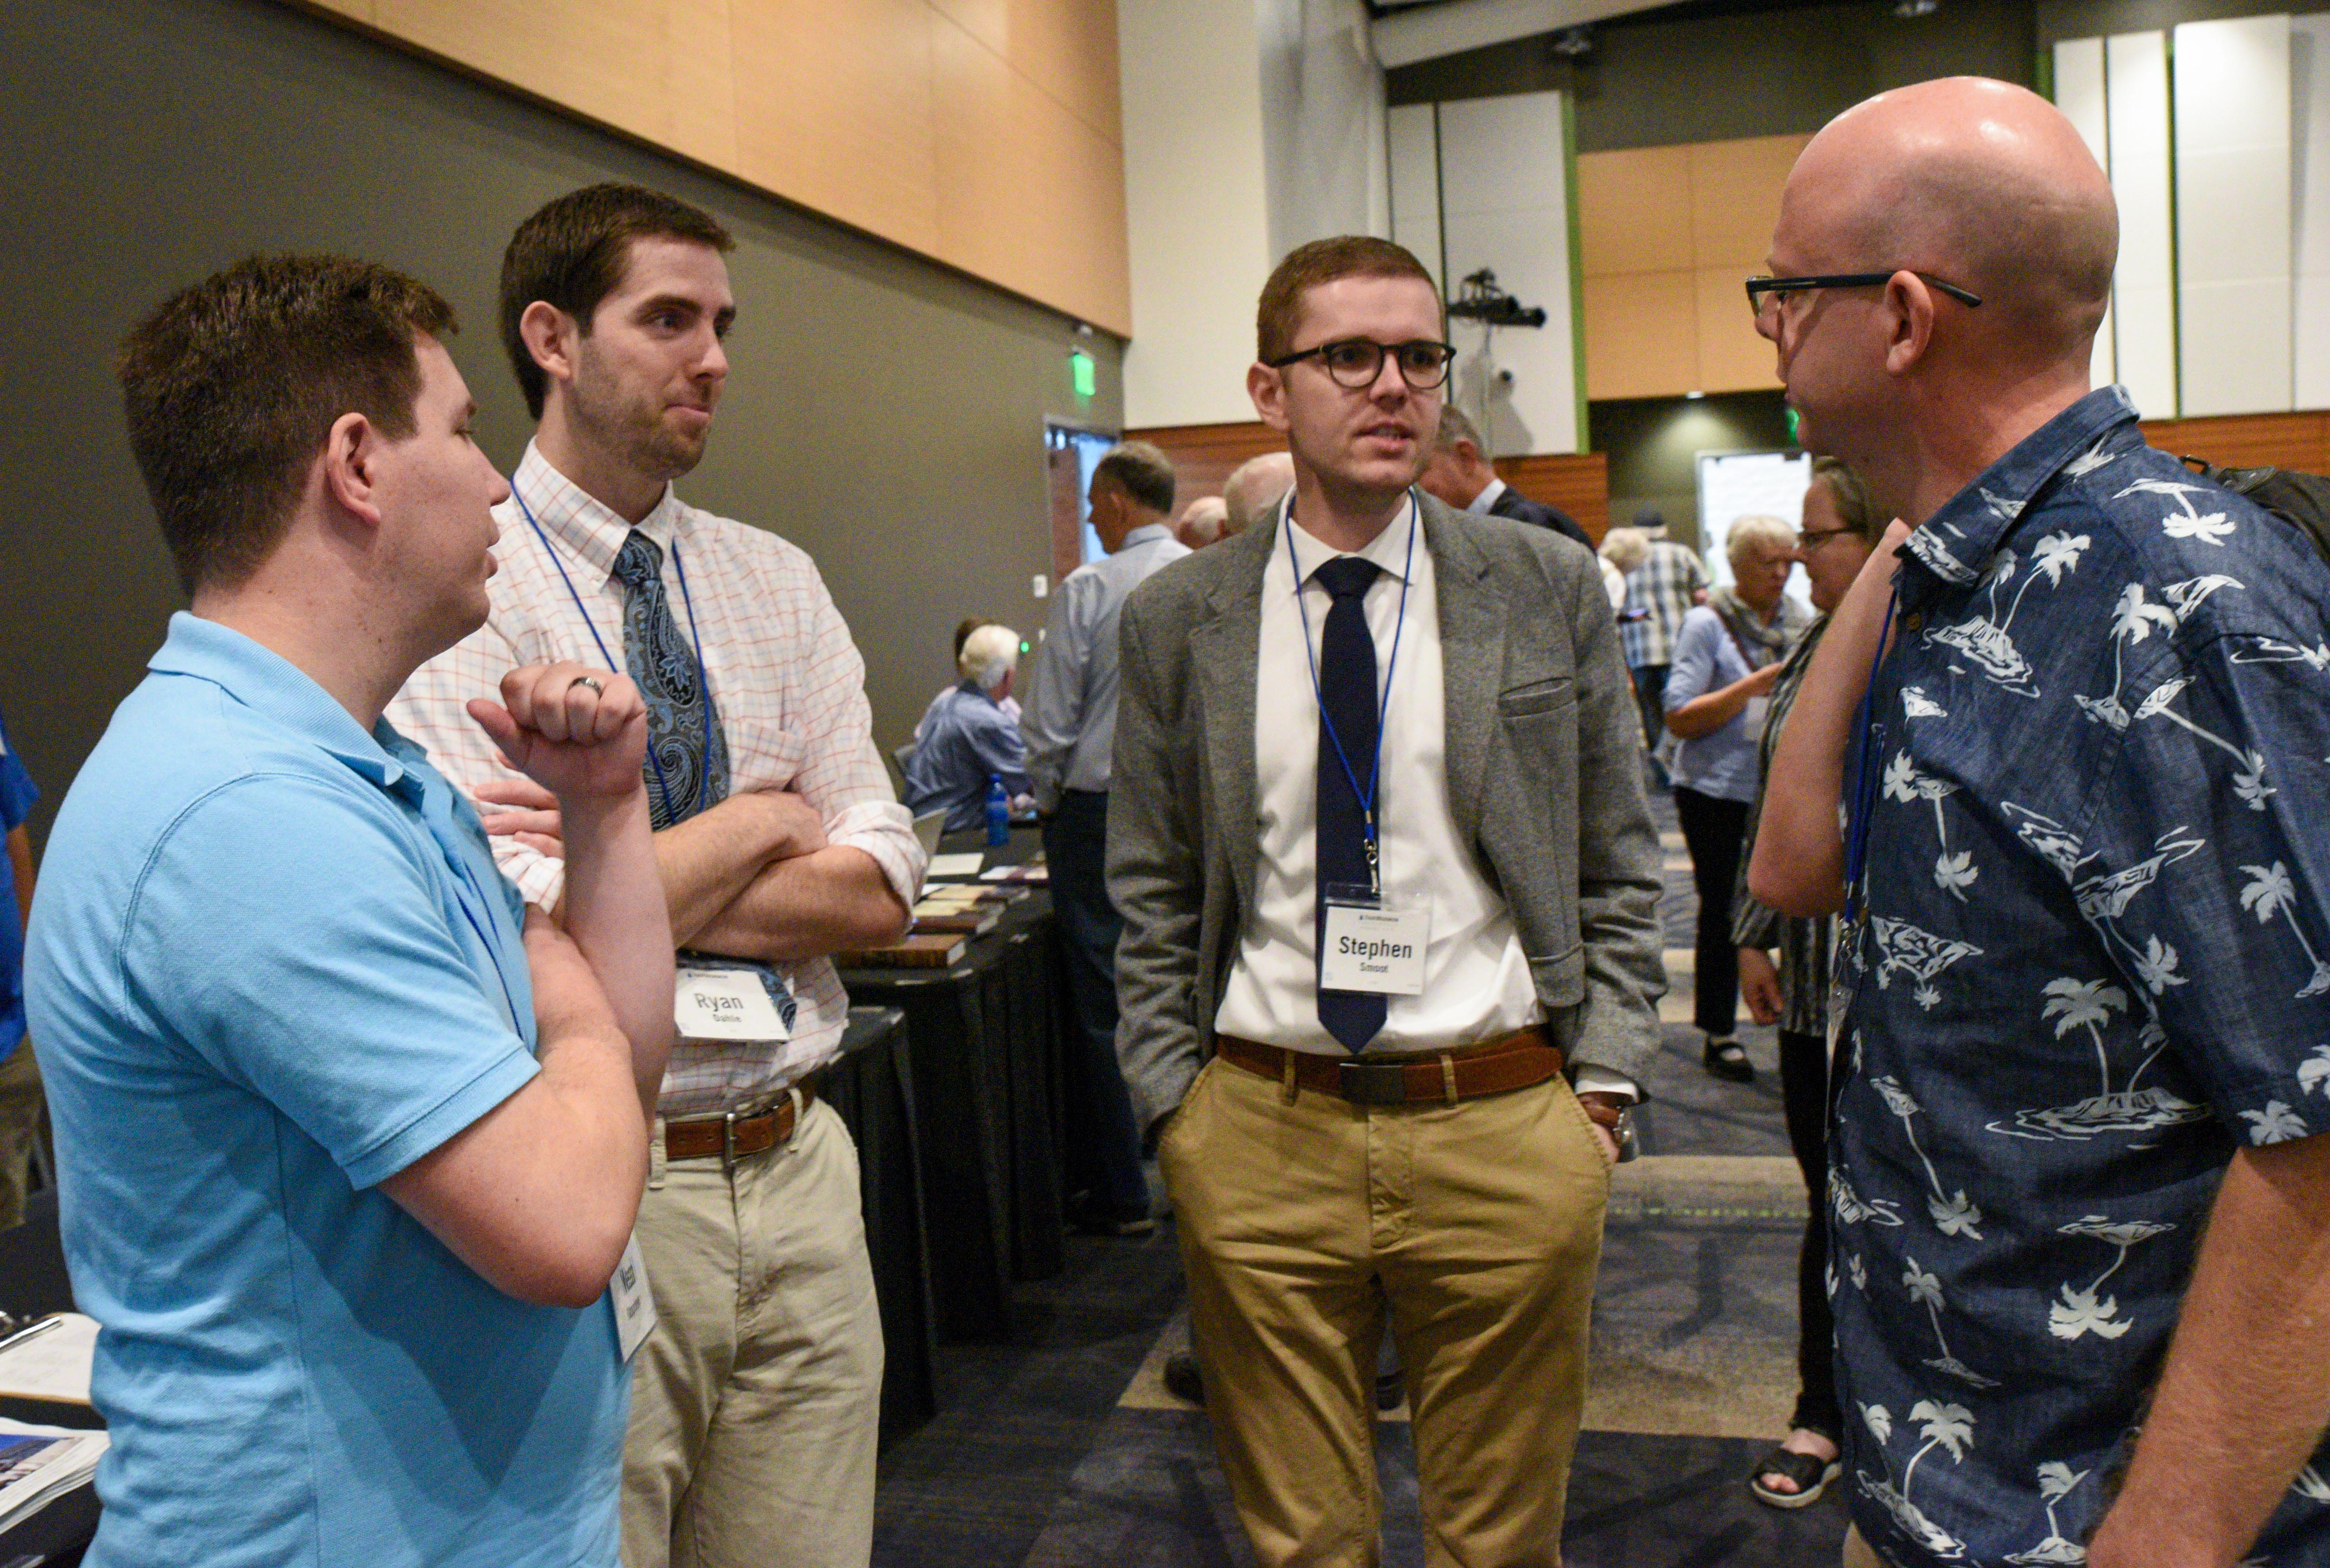 Attendees at the FairMormon conference on Friday, Aug. 9, 2019 at the Utah Valley Convention Center in Provo, Utah chat between conference sessions.